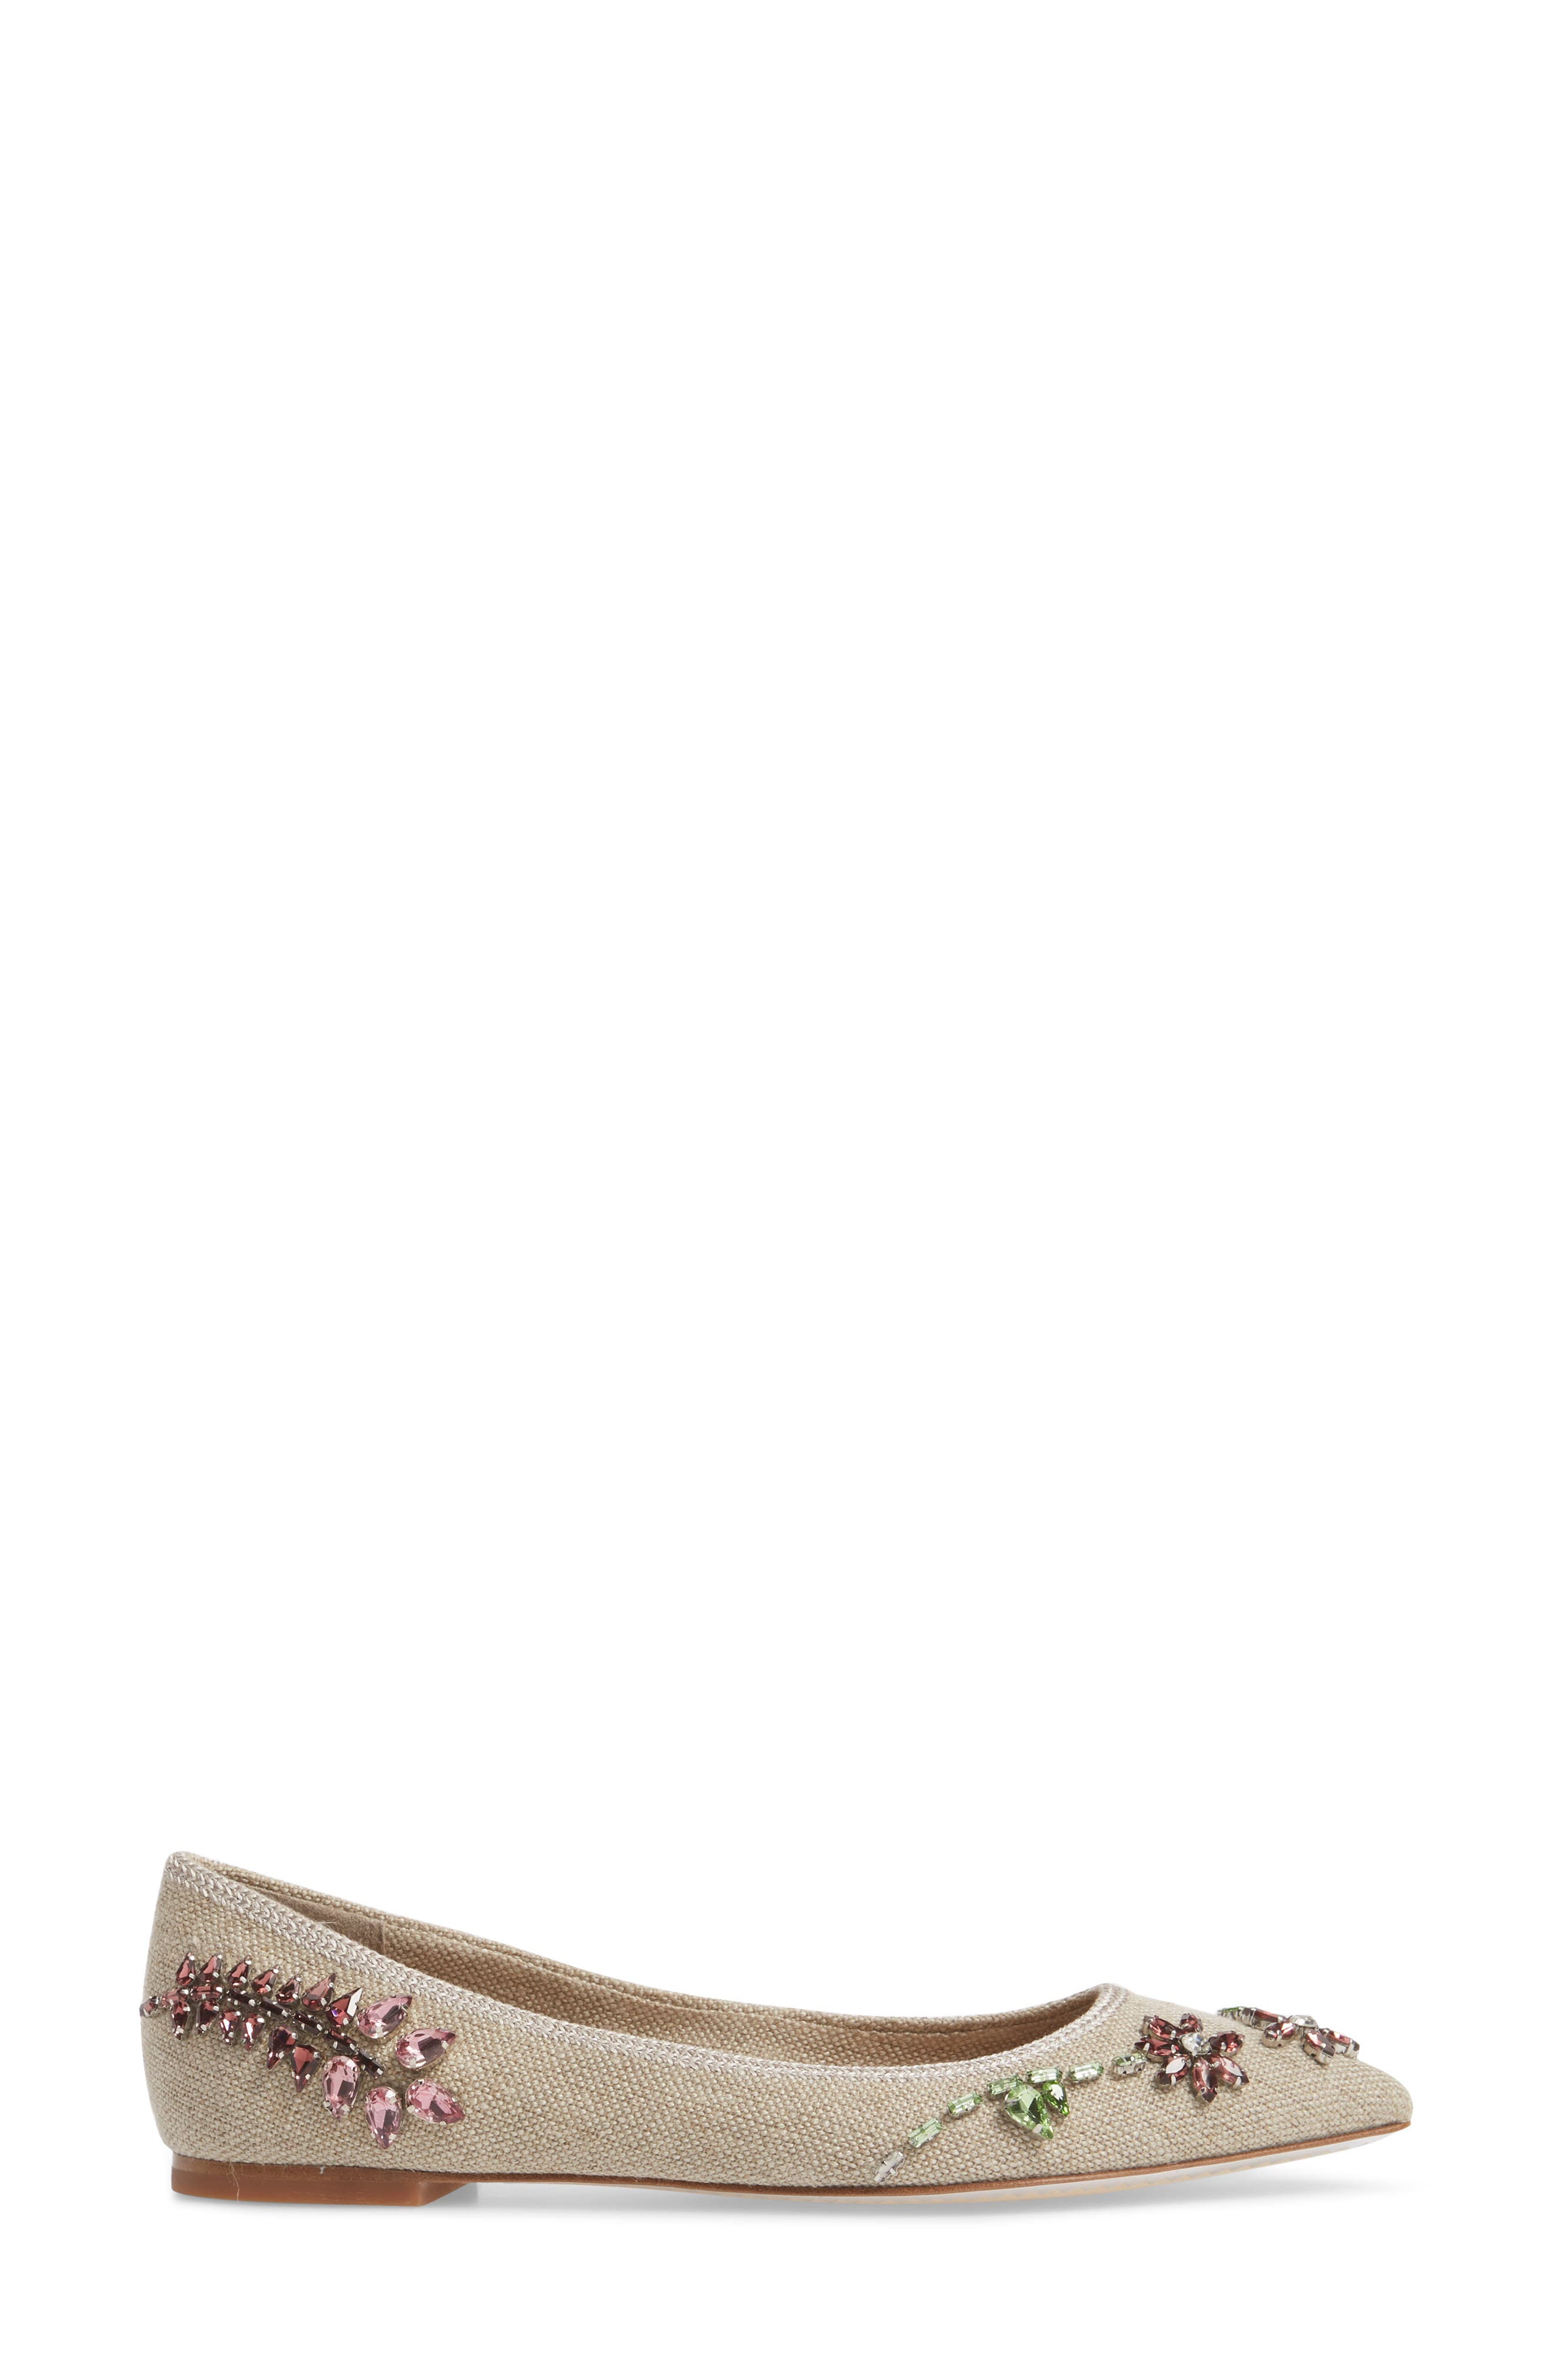 Meadow Embellished Pointy Toe Flat,                             Alternate thumbnail 3, color,                             Natural/ Multi Color